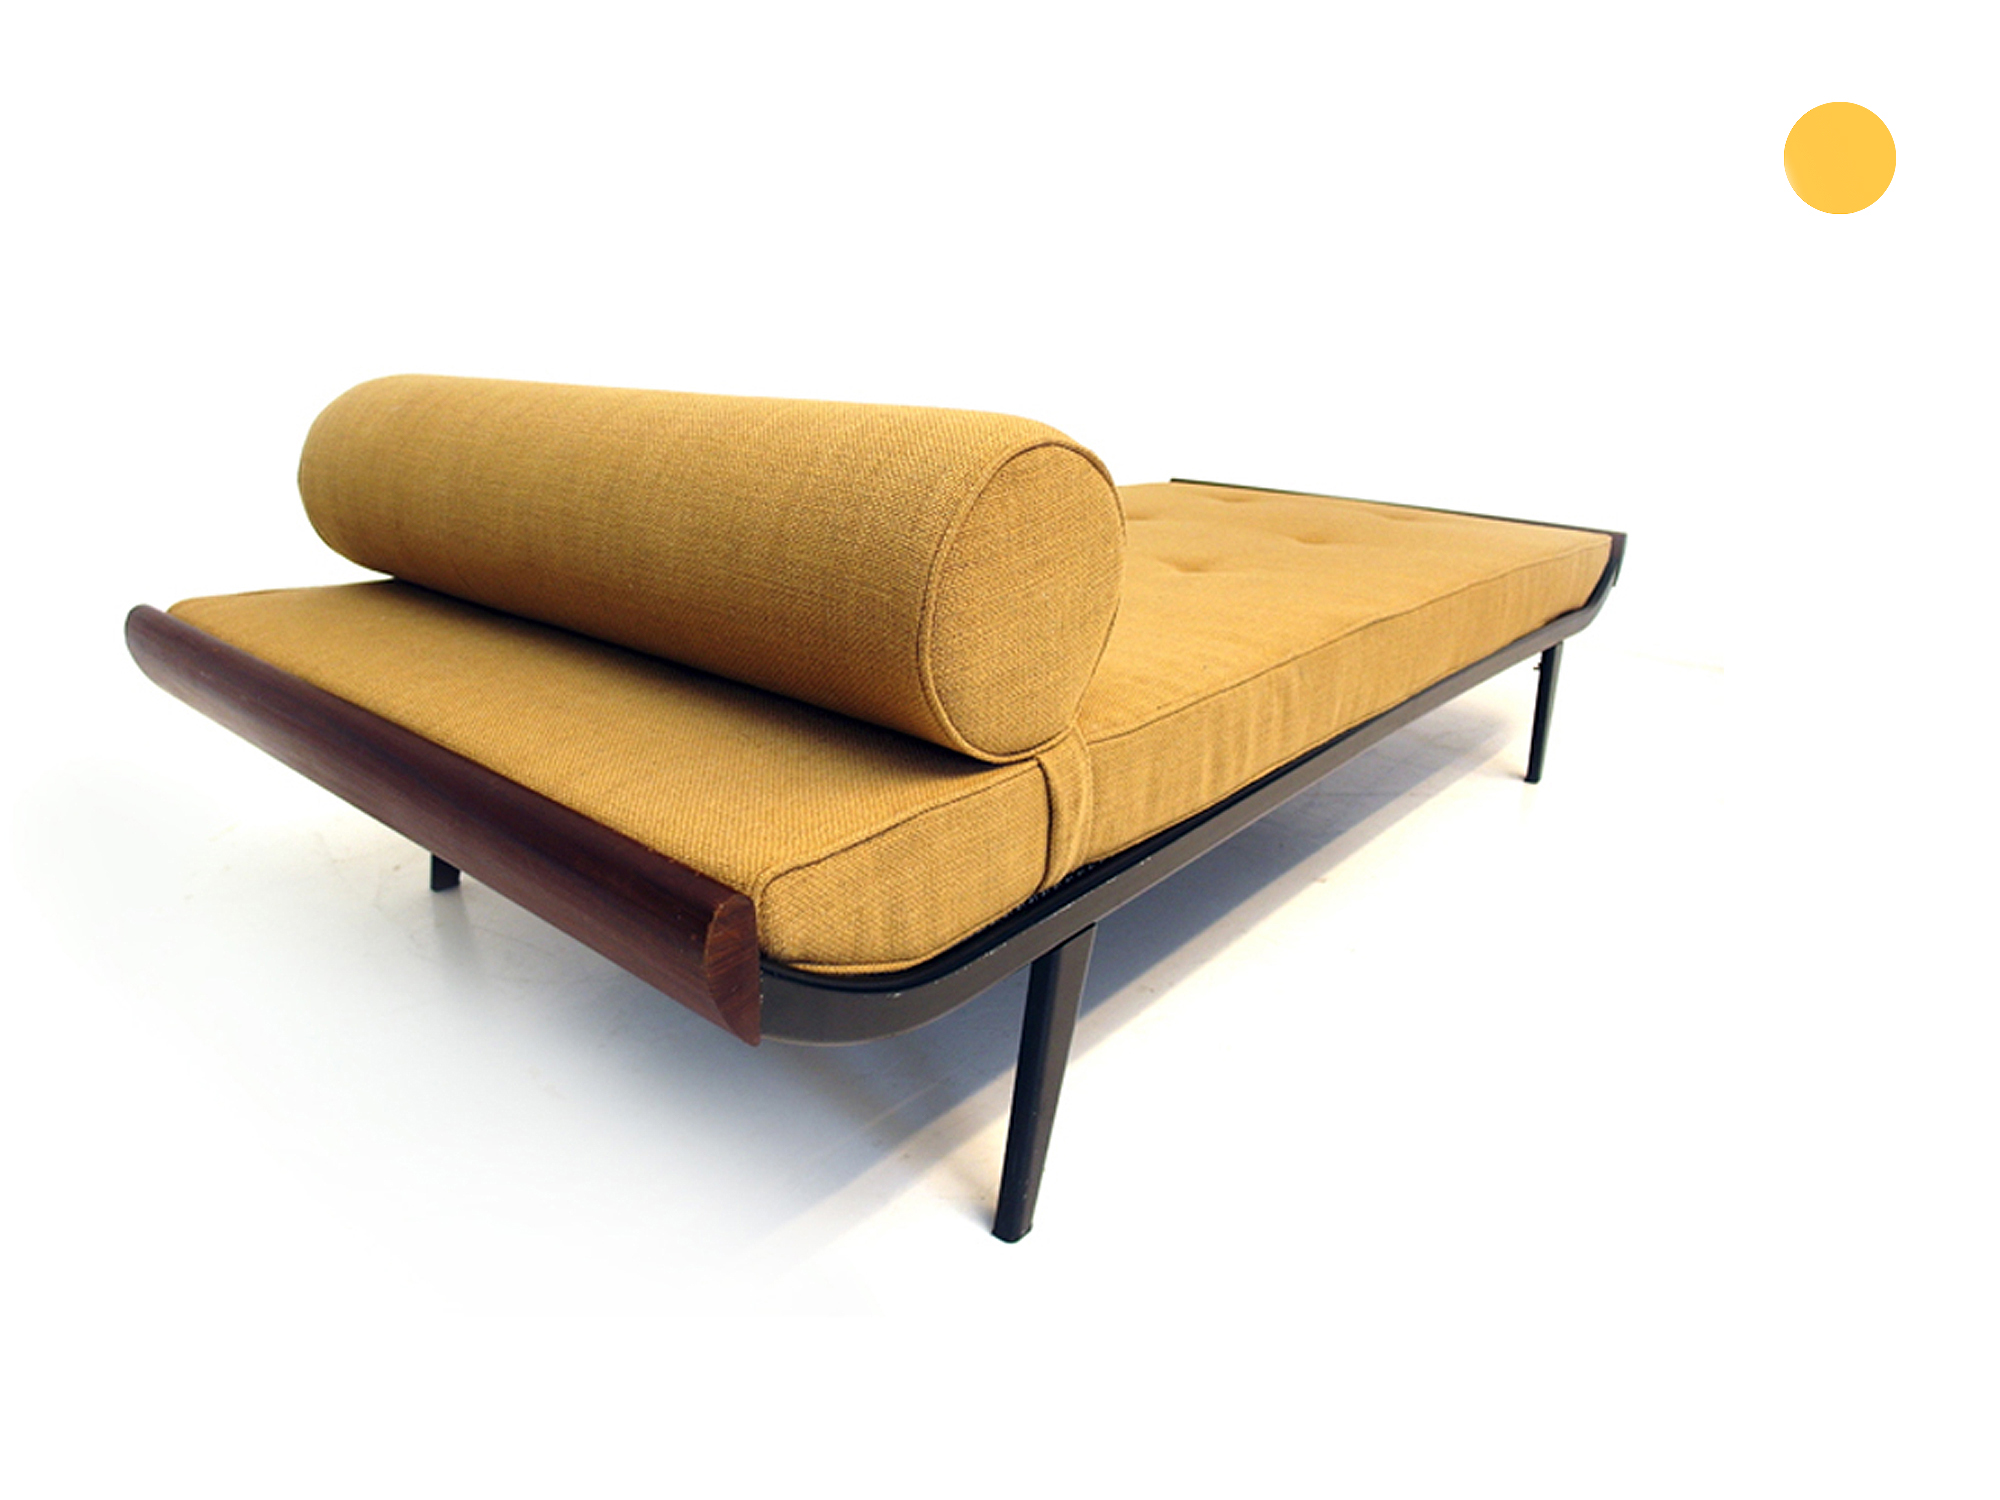 Andre Cordemeyer Cleopatra Daybed The Netherlands 1954 Visavu Design